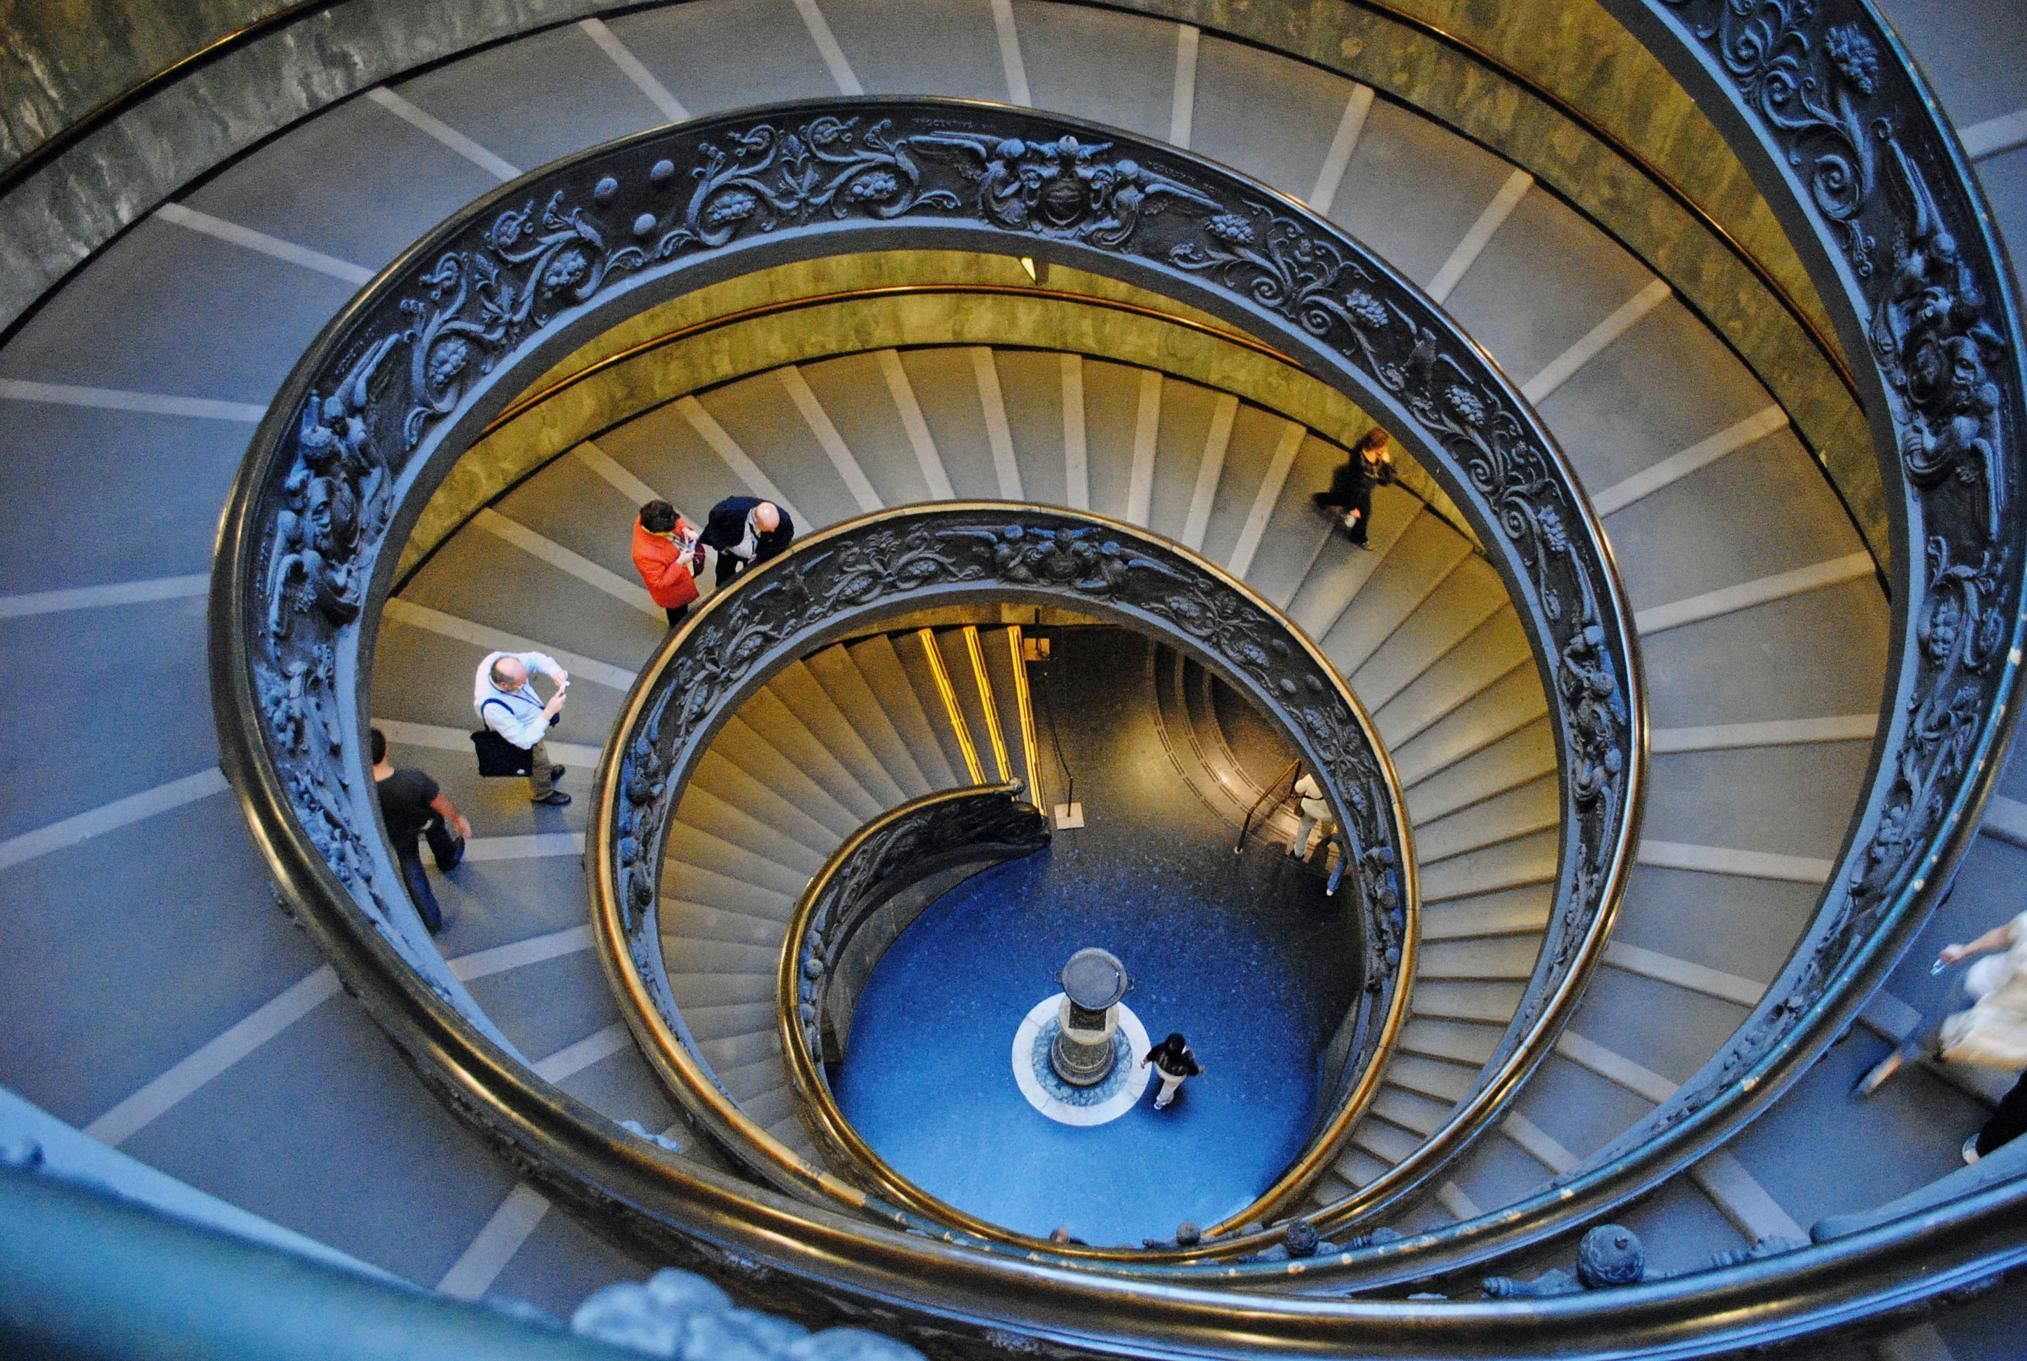 Spiral staircase in the vatican museum fibonacci spiral for Architecture spiral staircase